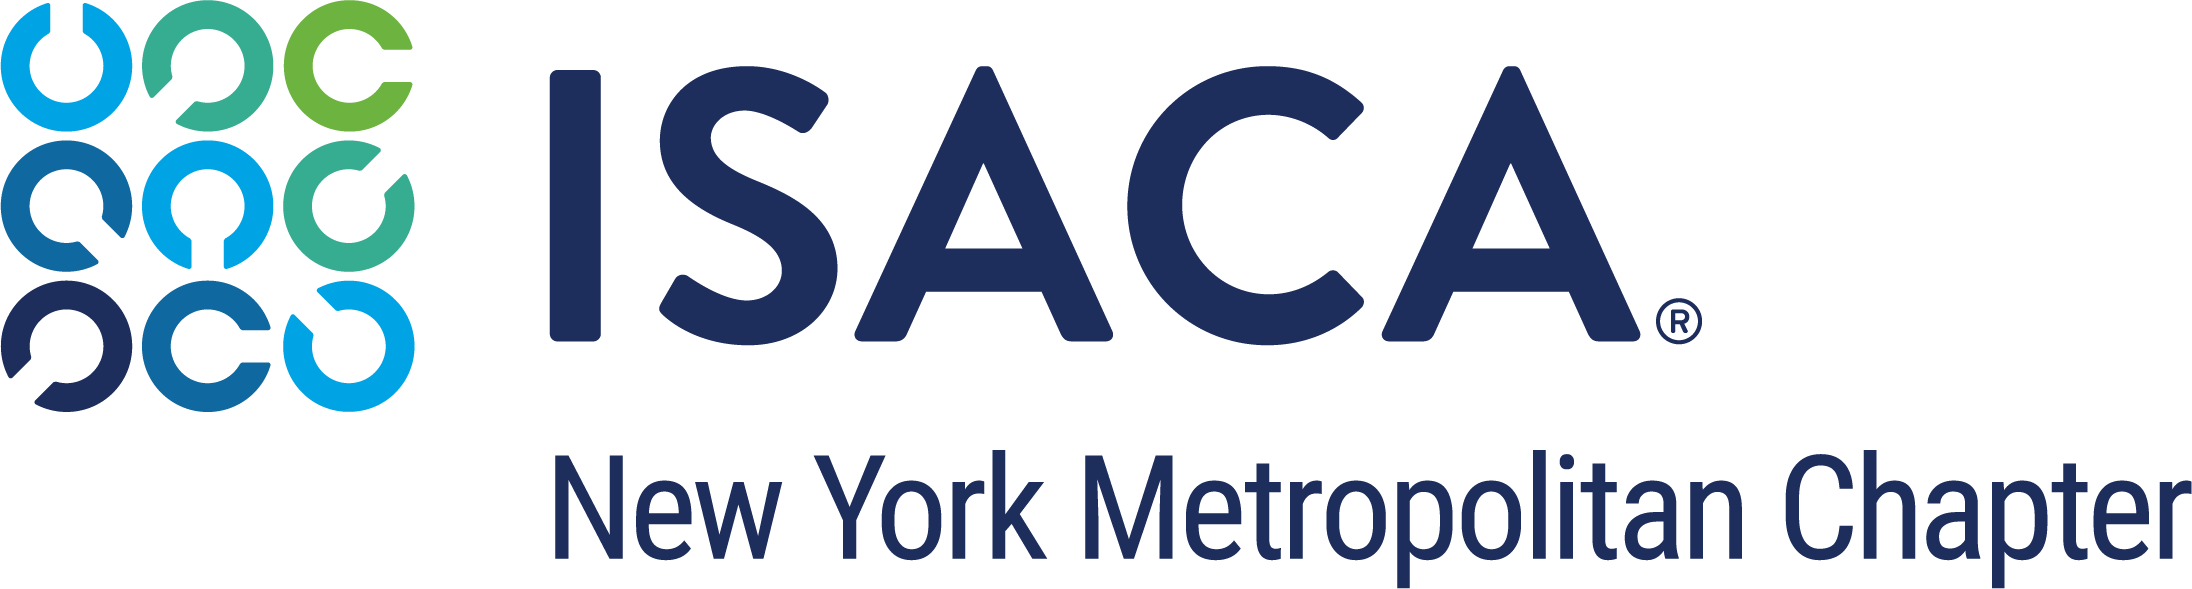 ISACA New York Metropolitan Annual Membership Meeting and Wasserman Award Winner Presentation